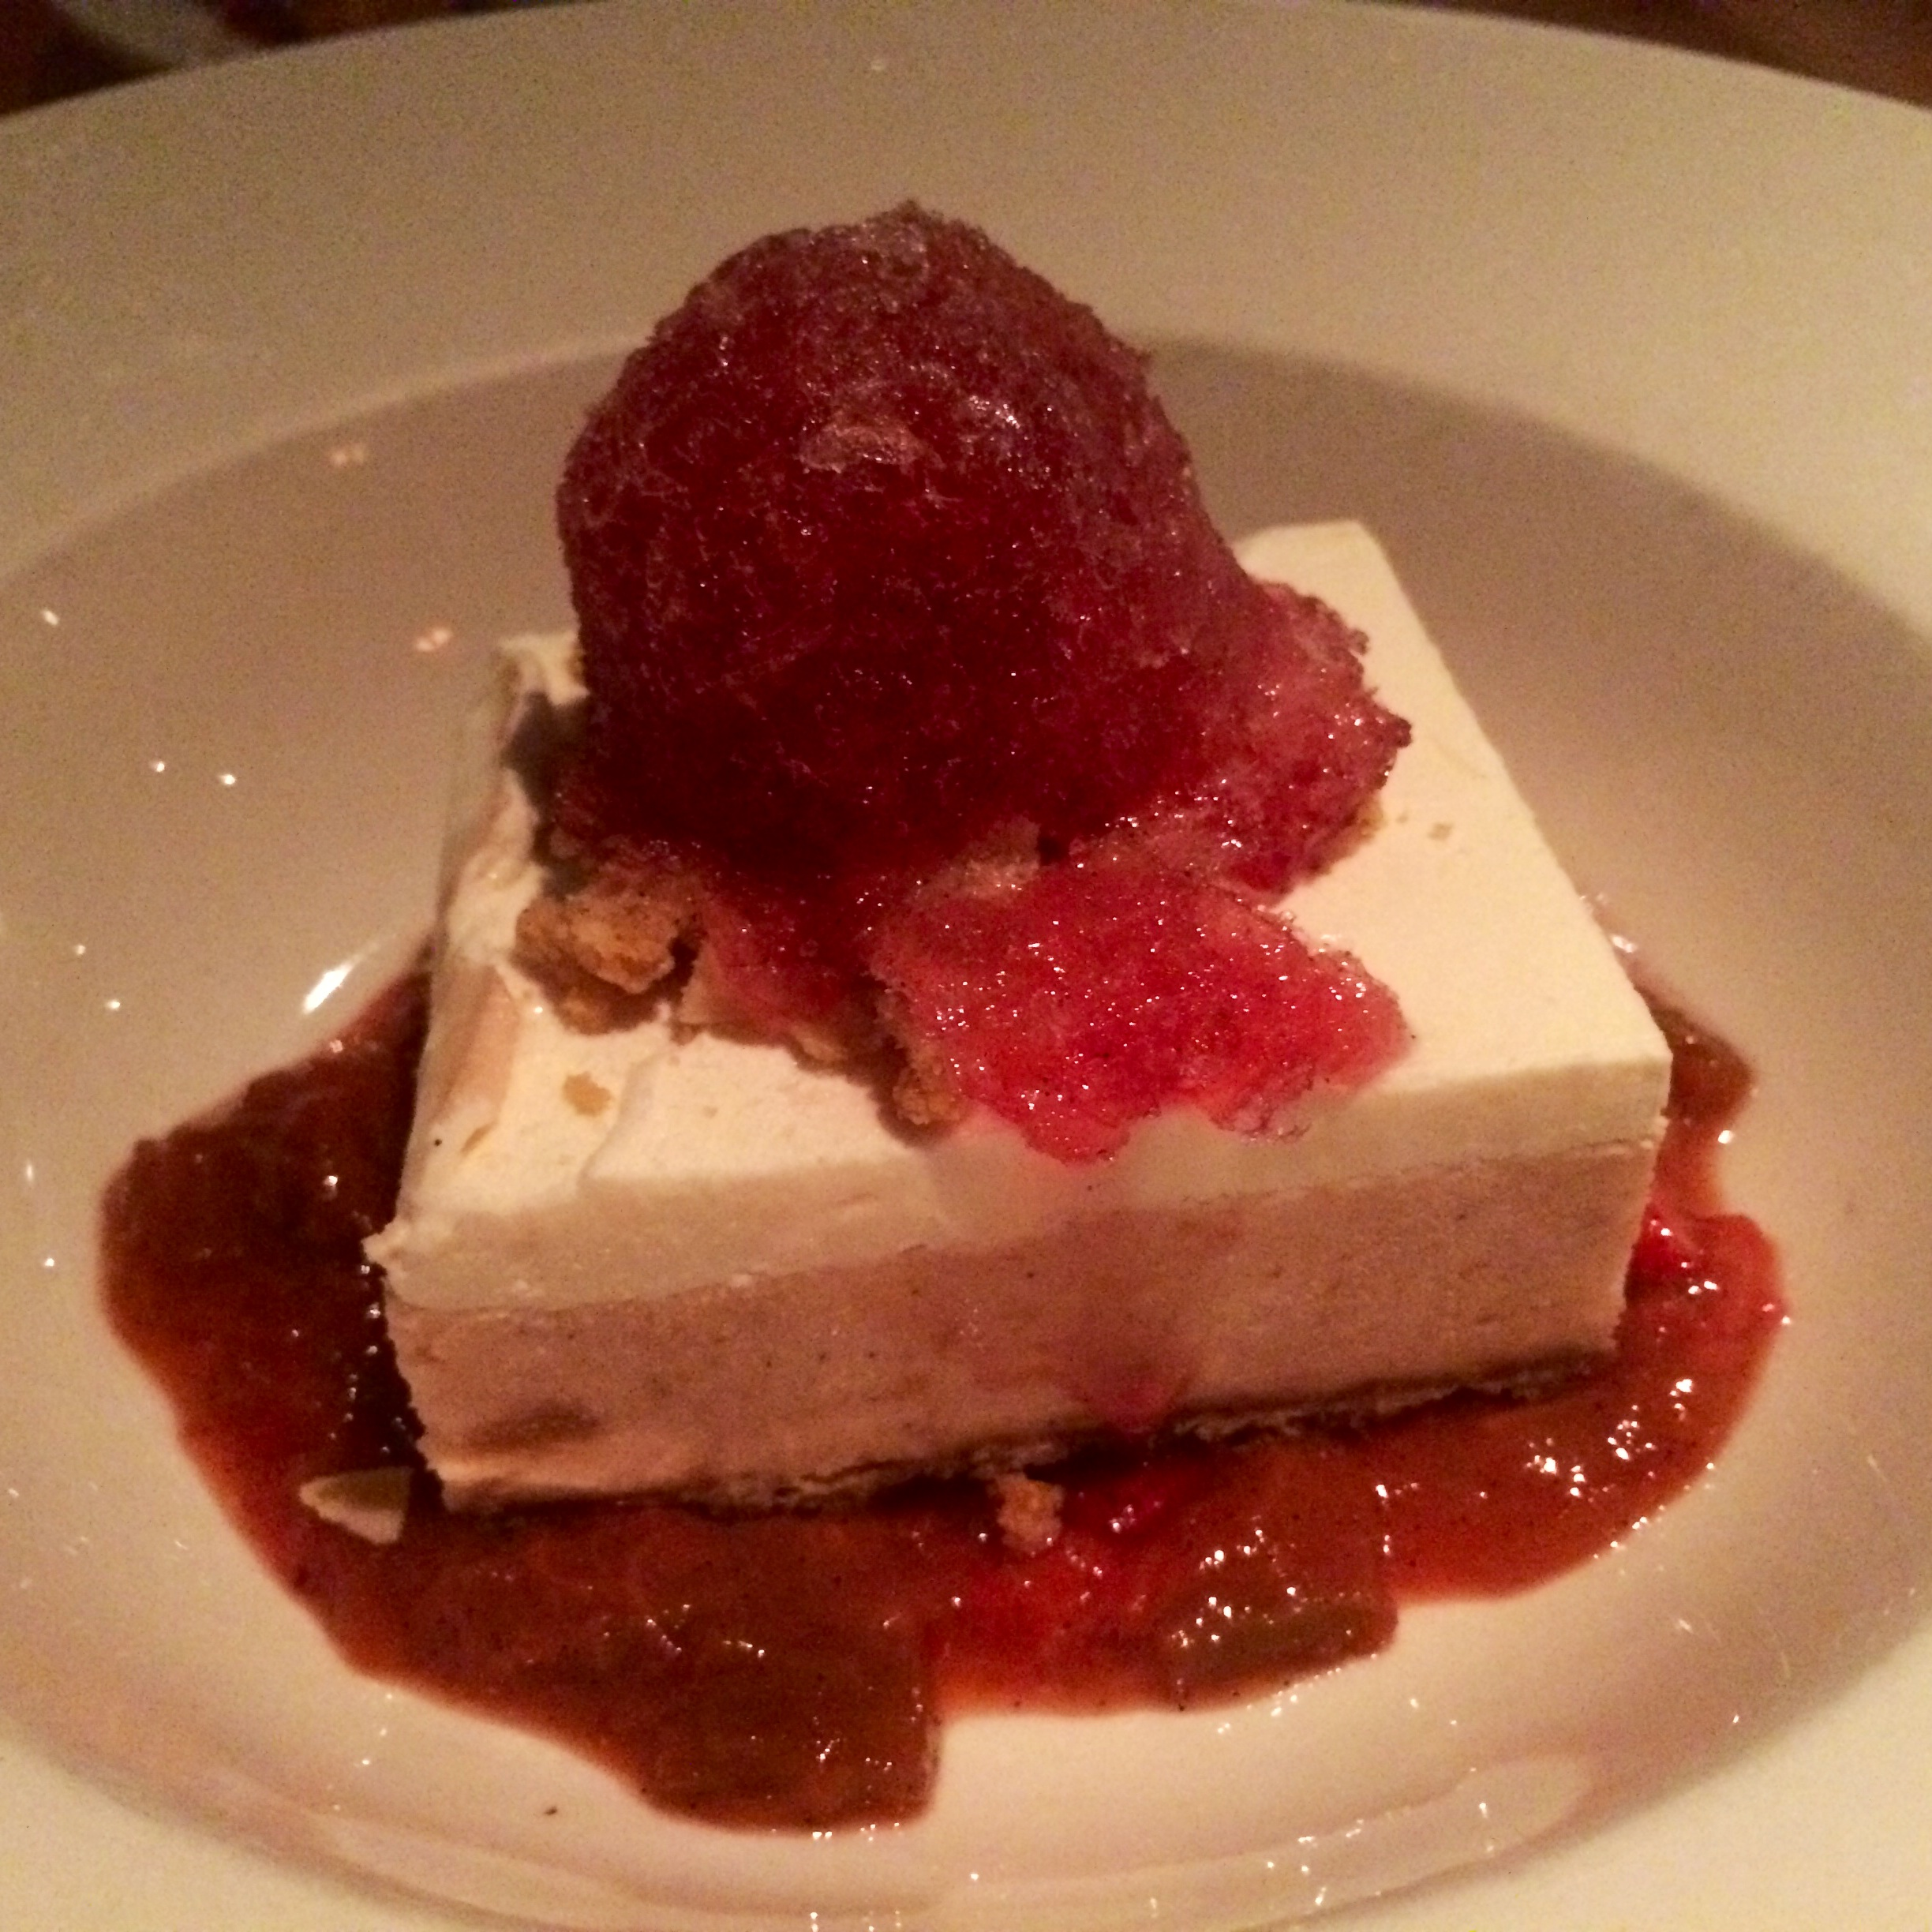 RHUBARB ICE BOX PIE - STRAWBERRY-RHUBARB COMPOTE, ALMOND STREUSEL, BRACHETTO GRANITA